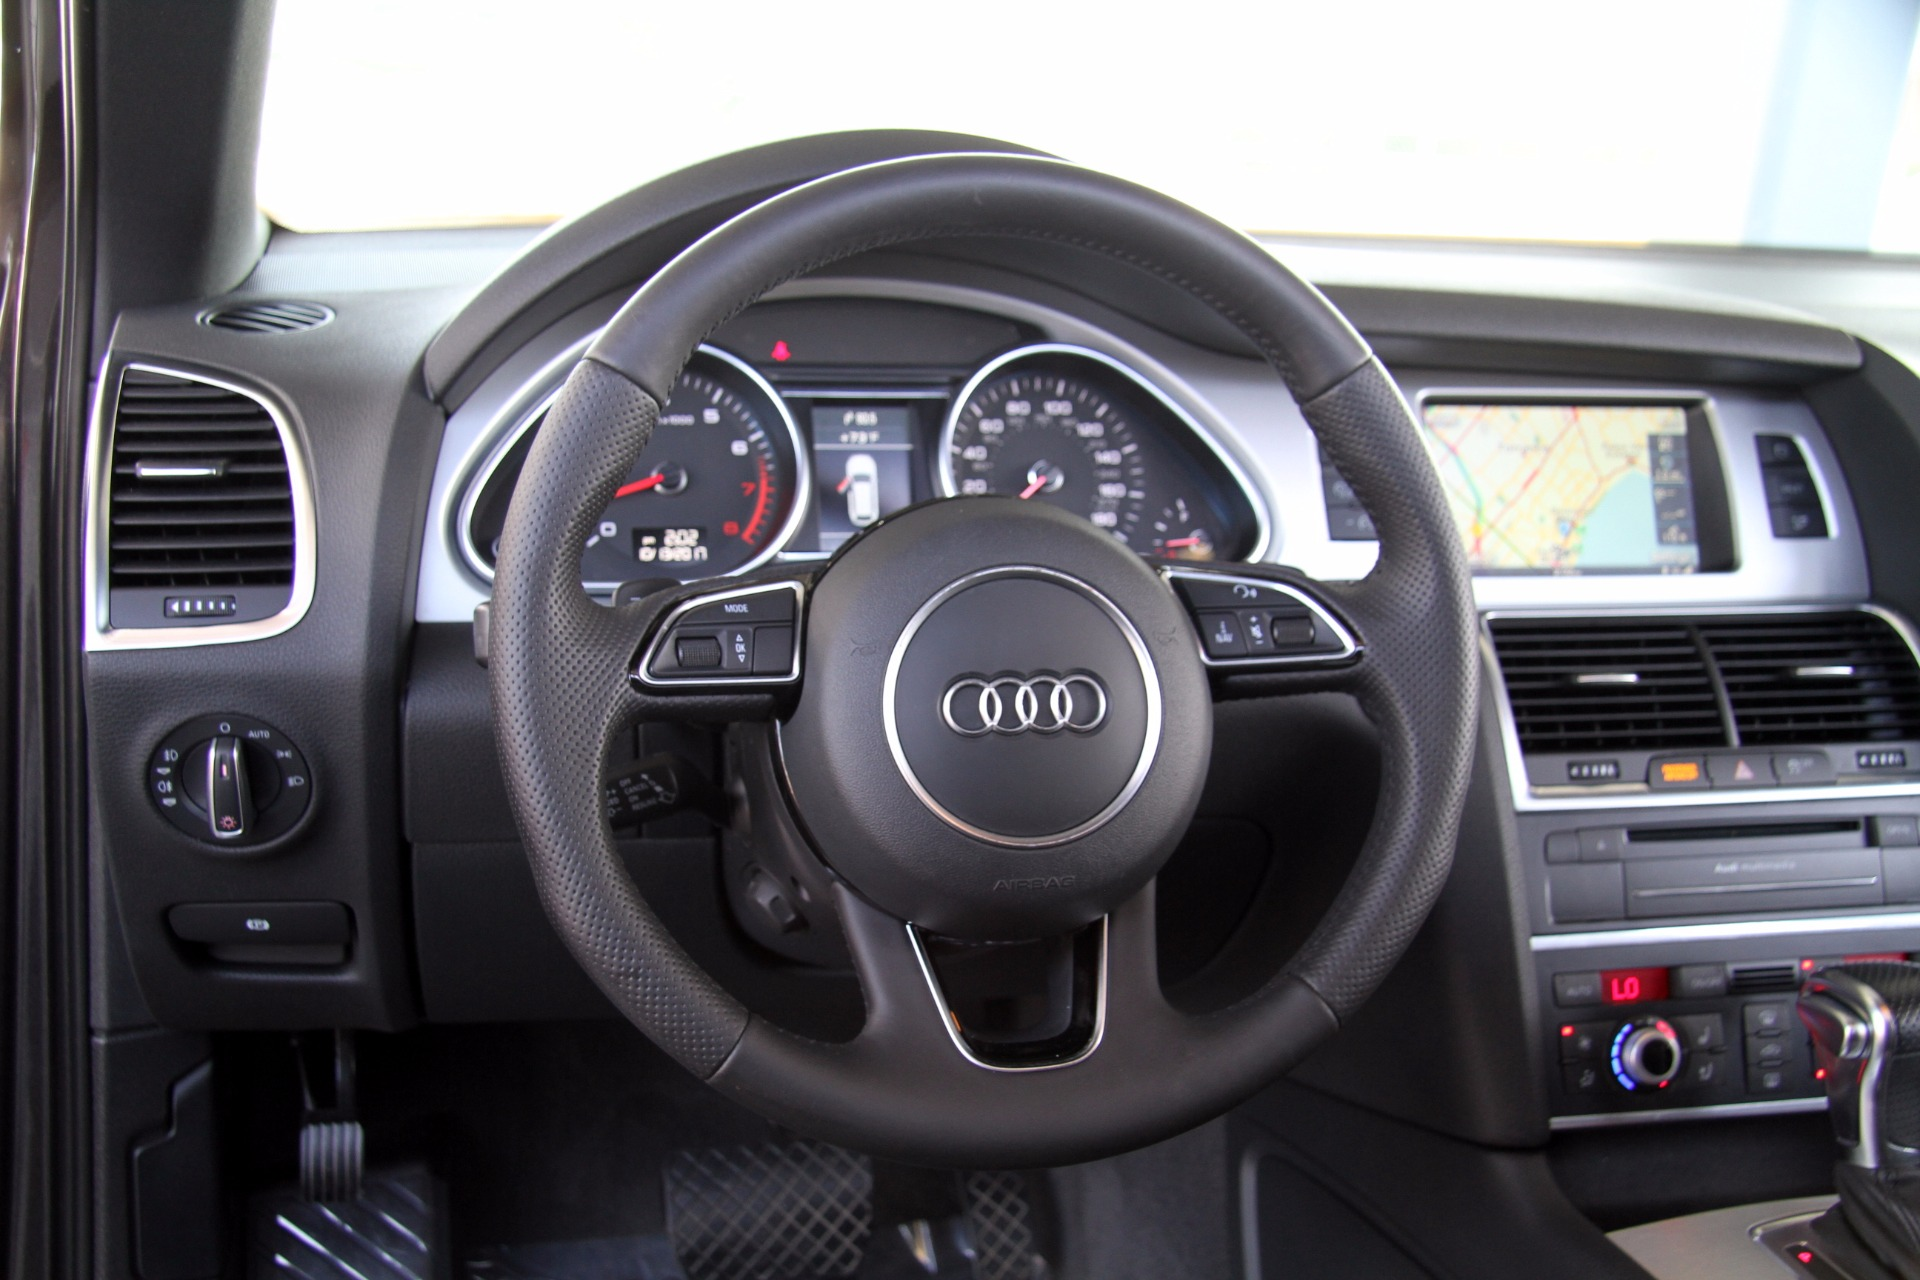 Audi Dealership Near Me >> 2014 Audi Q7 3.0T S-Line Prestige Stock # 6010 for sale ...